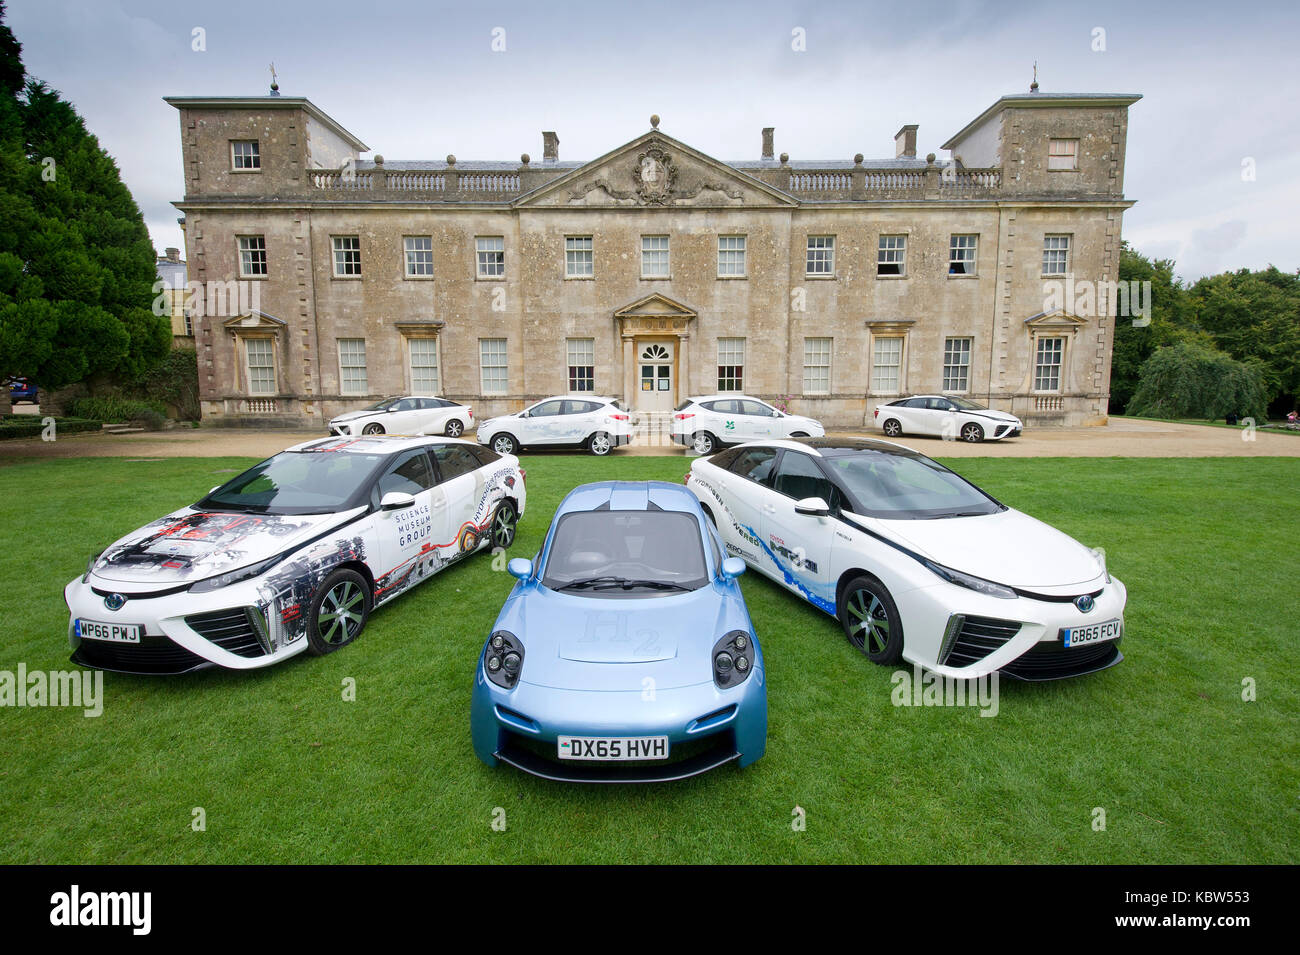 A selection of hydrogen powered cars including models from Riversimple (blue), Toyota, Hyundai and Honda - Stock Image